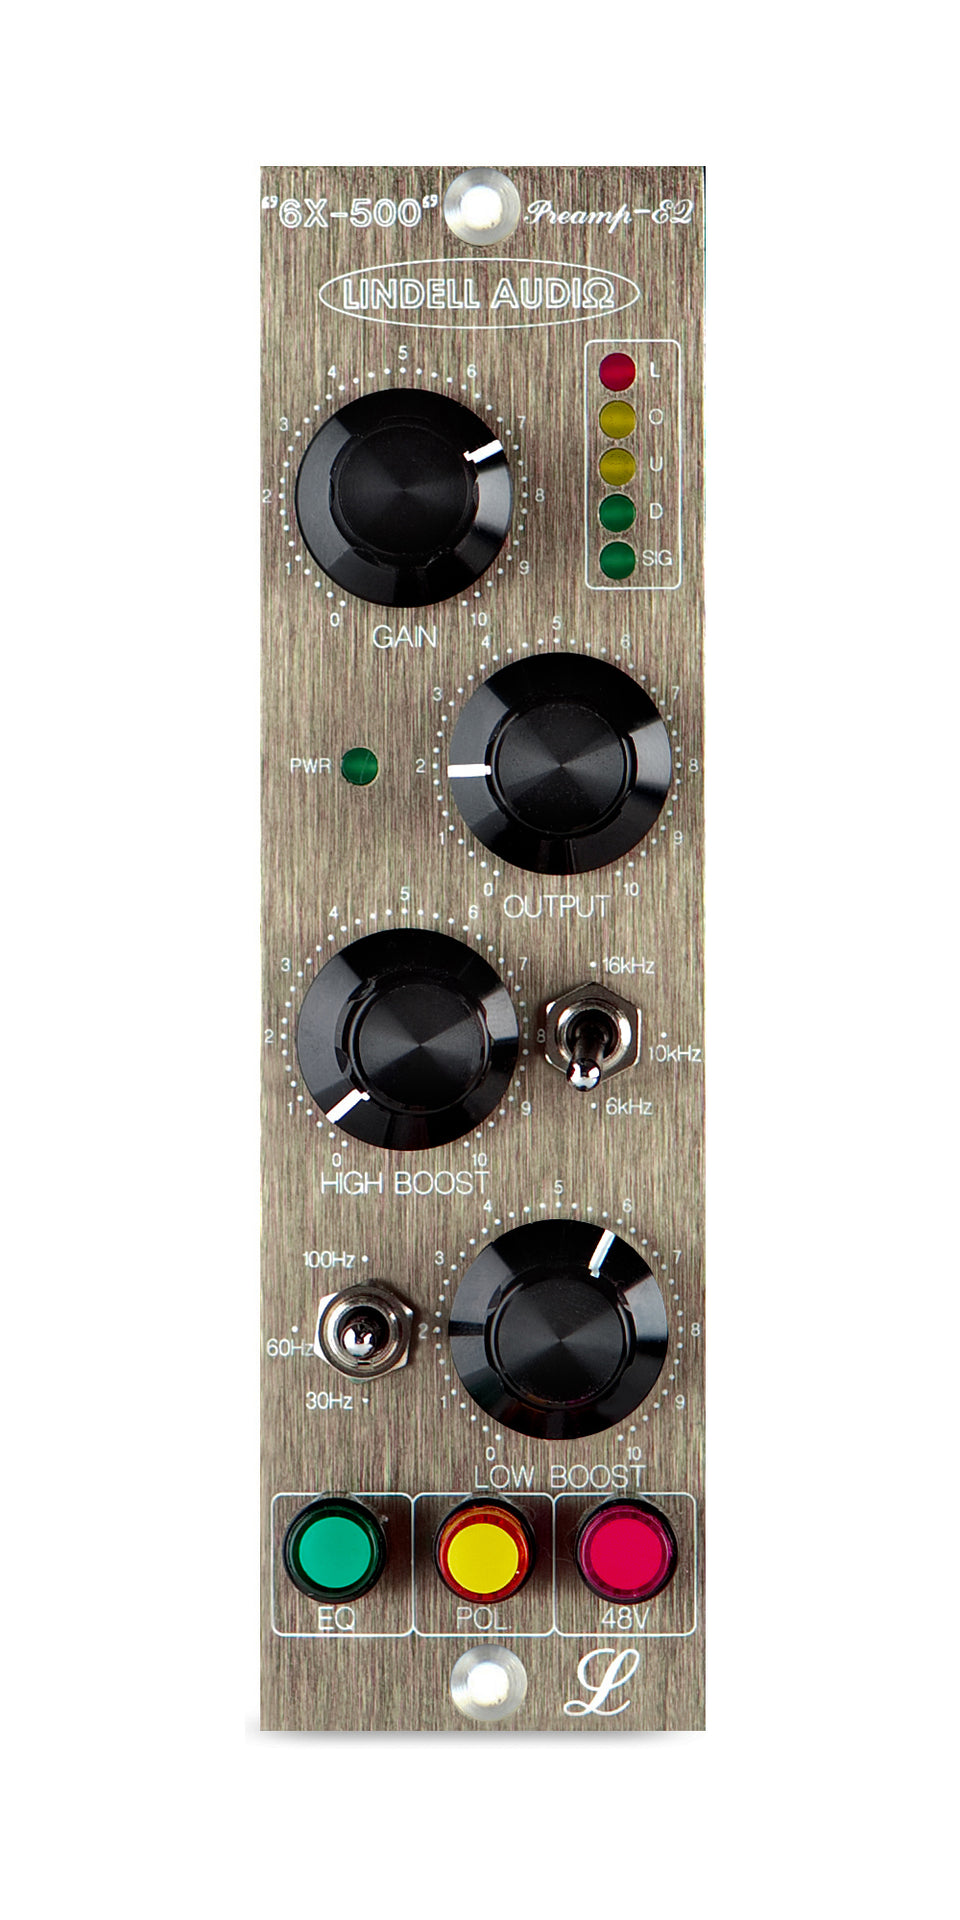 Lindell 6X-500 500 Series Microphone Preamplifier